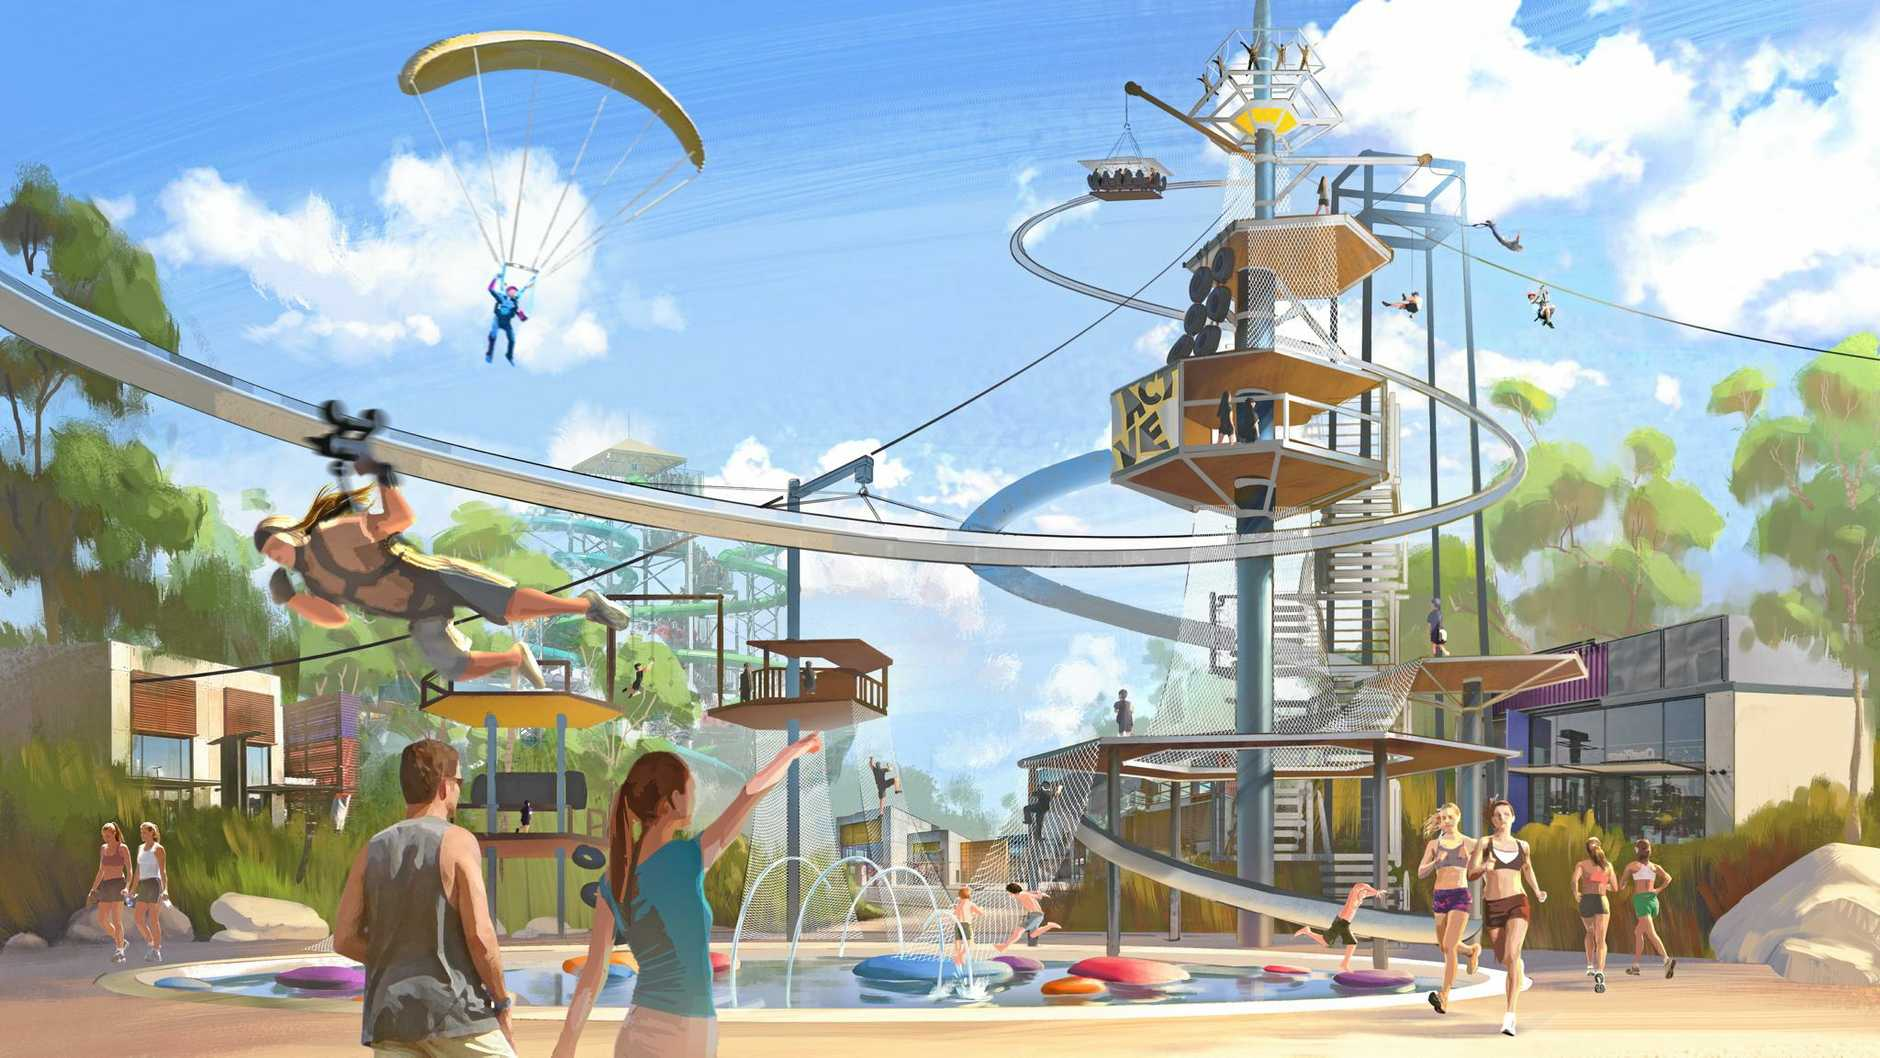 An artist's impression of the proposed new water park at Steve Irwin Way. June 2016.